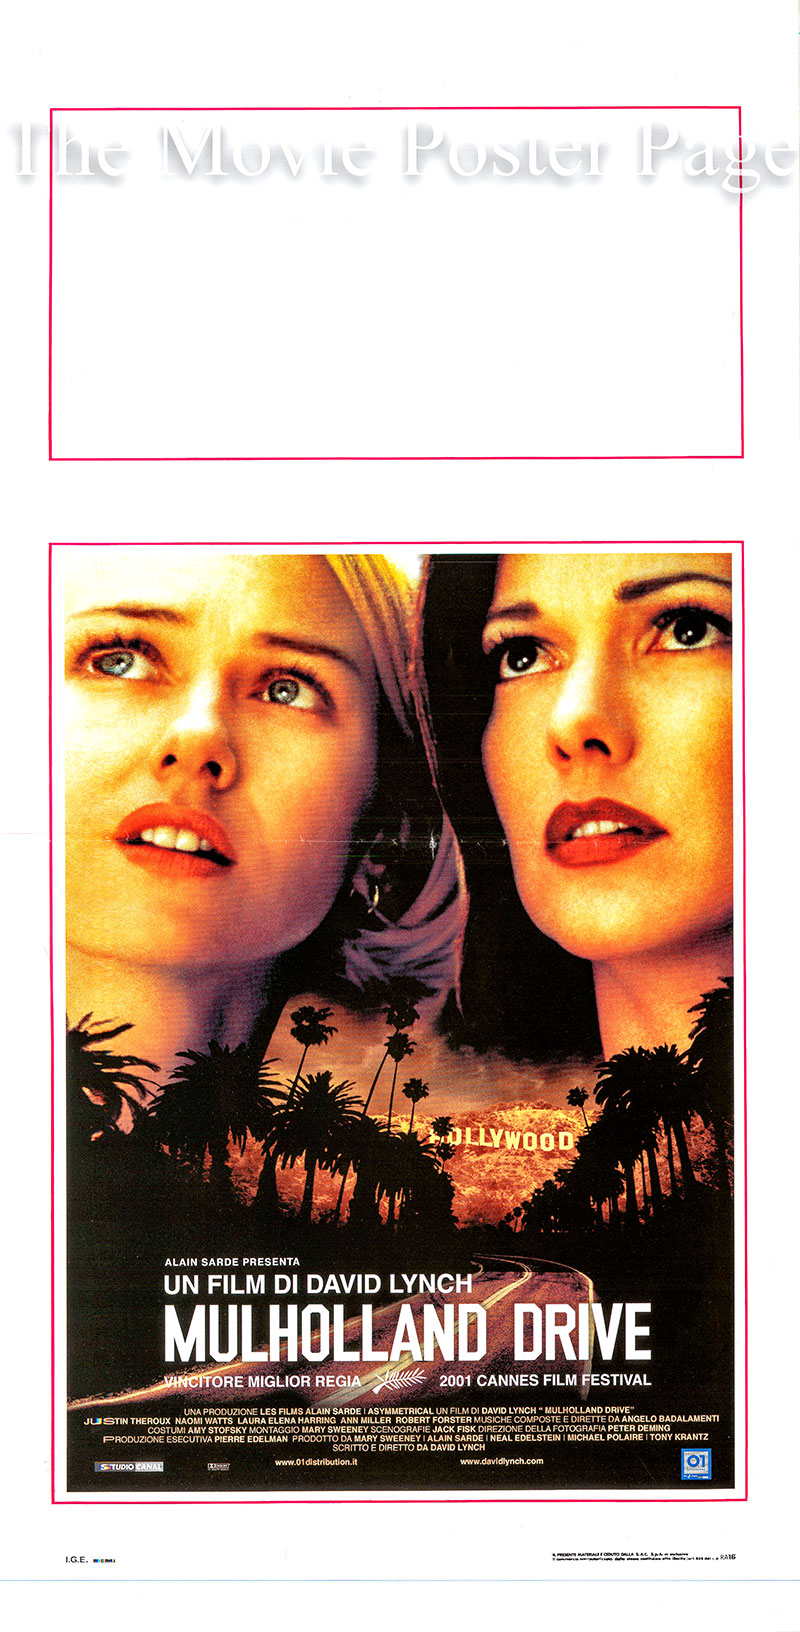 Pictured is an Italian locandina poster for the 2001 David Lynch film Mulholland Drive starring Naomi Watts as Betty.